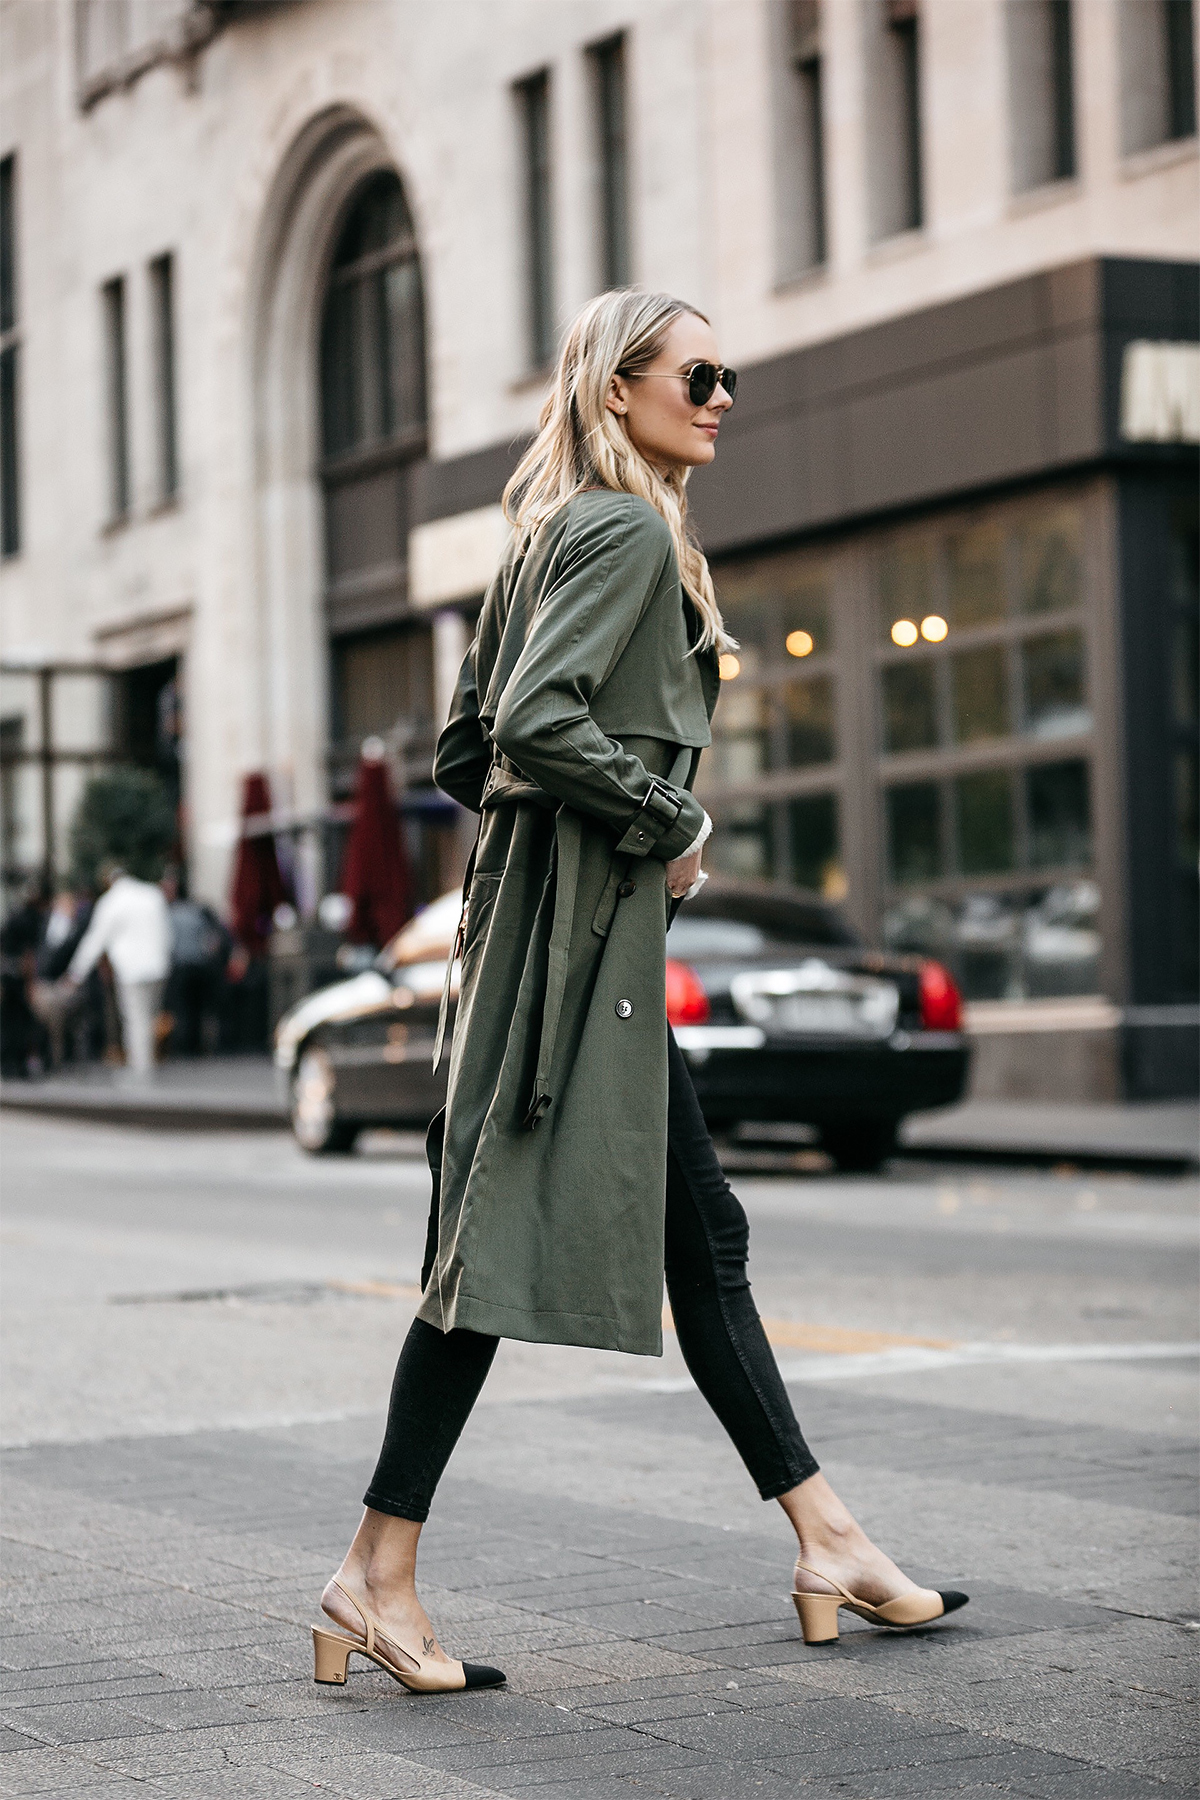 Blonde Woman Wearing Green Trench Coat Black Skinny Jeans Chanel Slingbacks Fashion Jackson Dallas Blogger Fashion Blogger Street Style